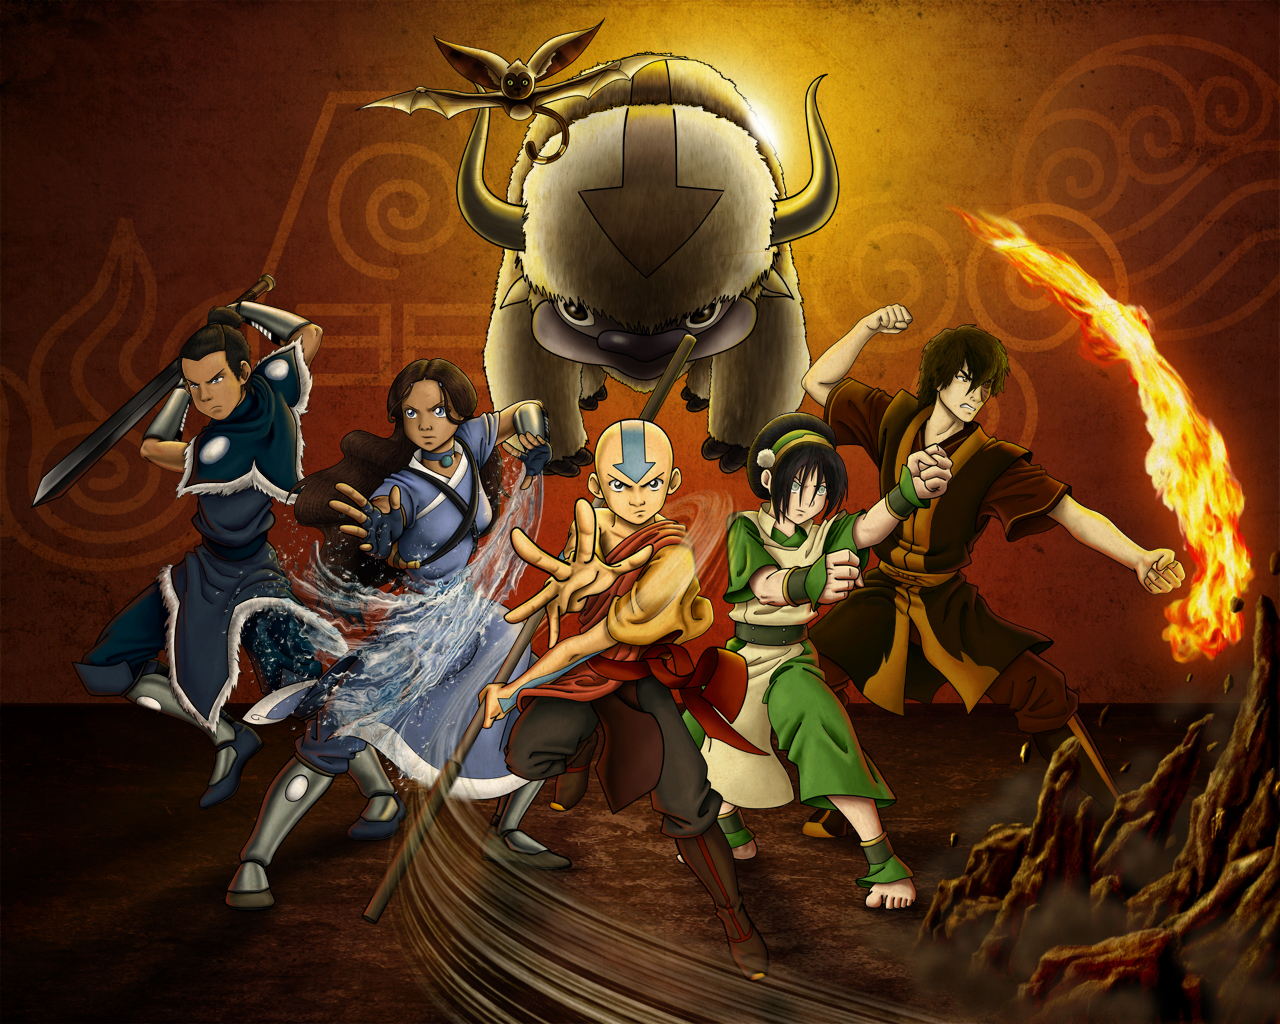 Remarkable, useful Avatar the last airbender fan characters everything